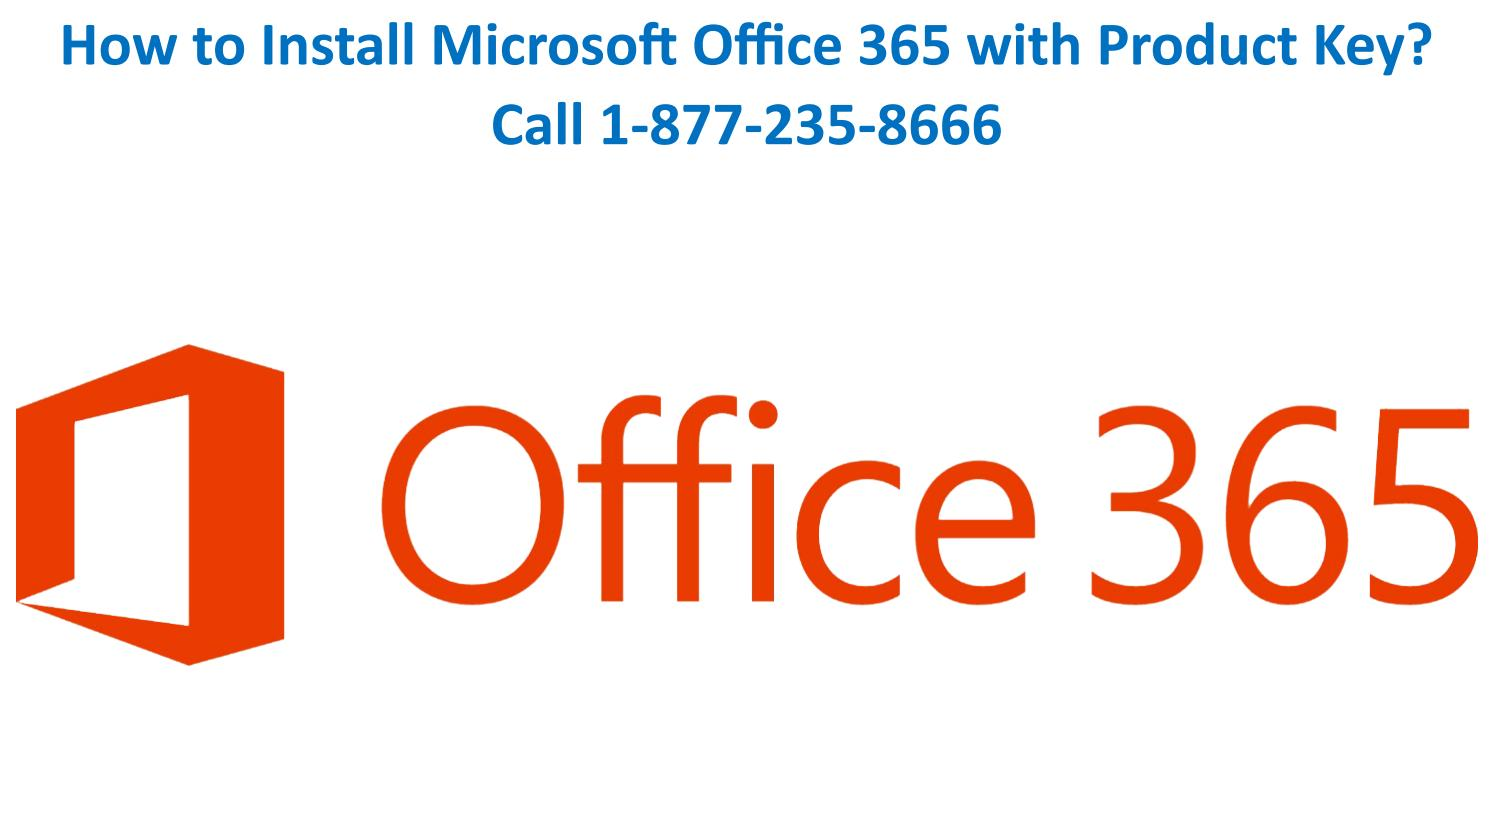 How to Install Microsoft Office 365 with Product Key? Call 1